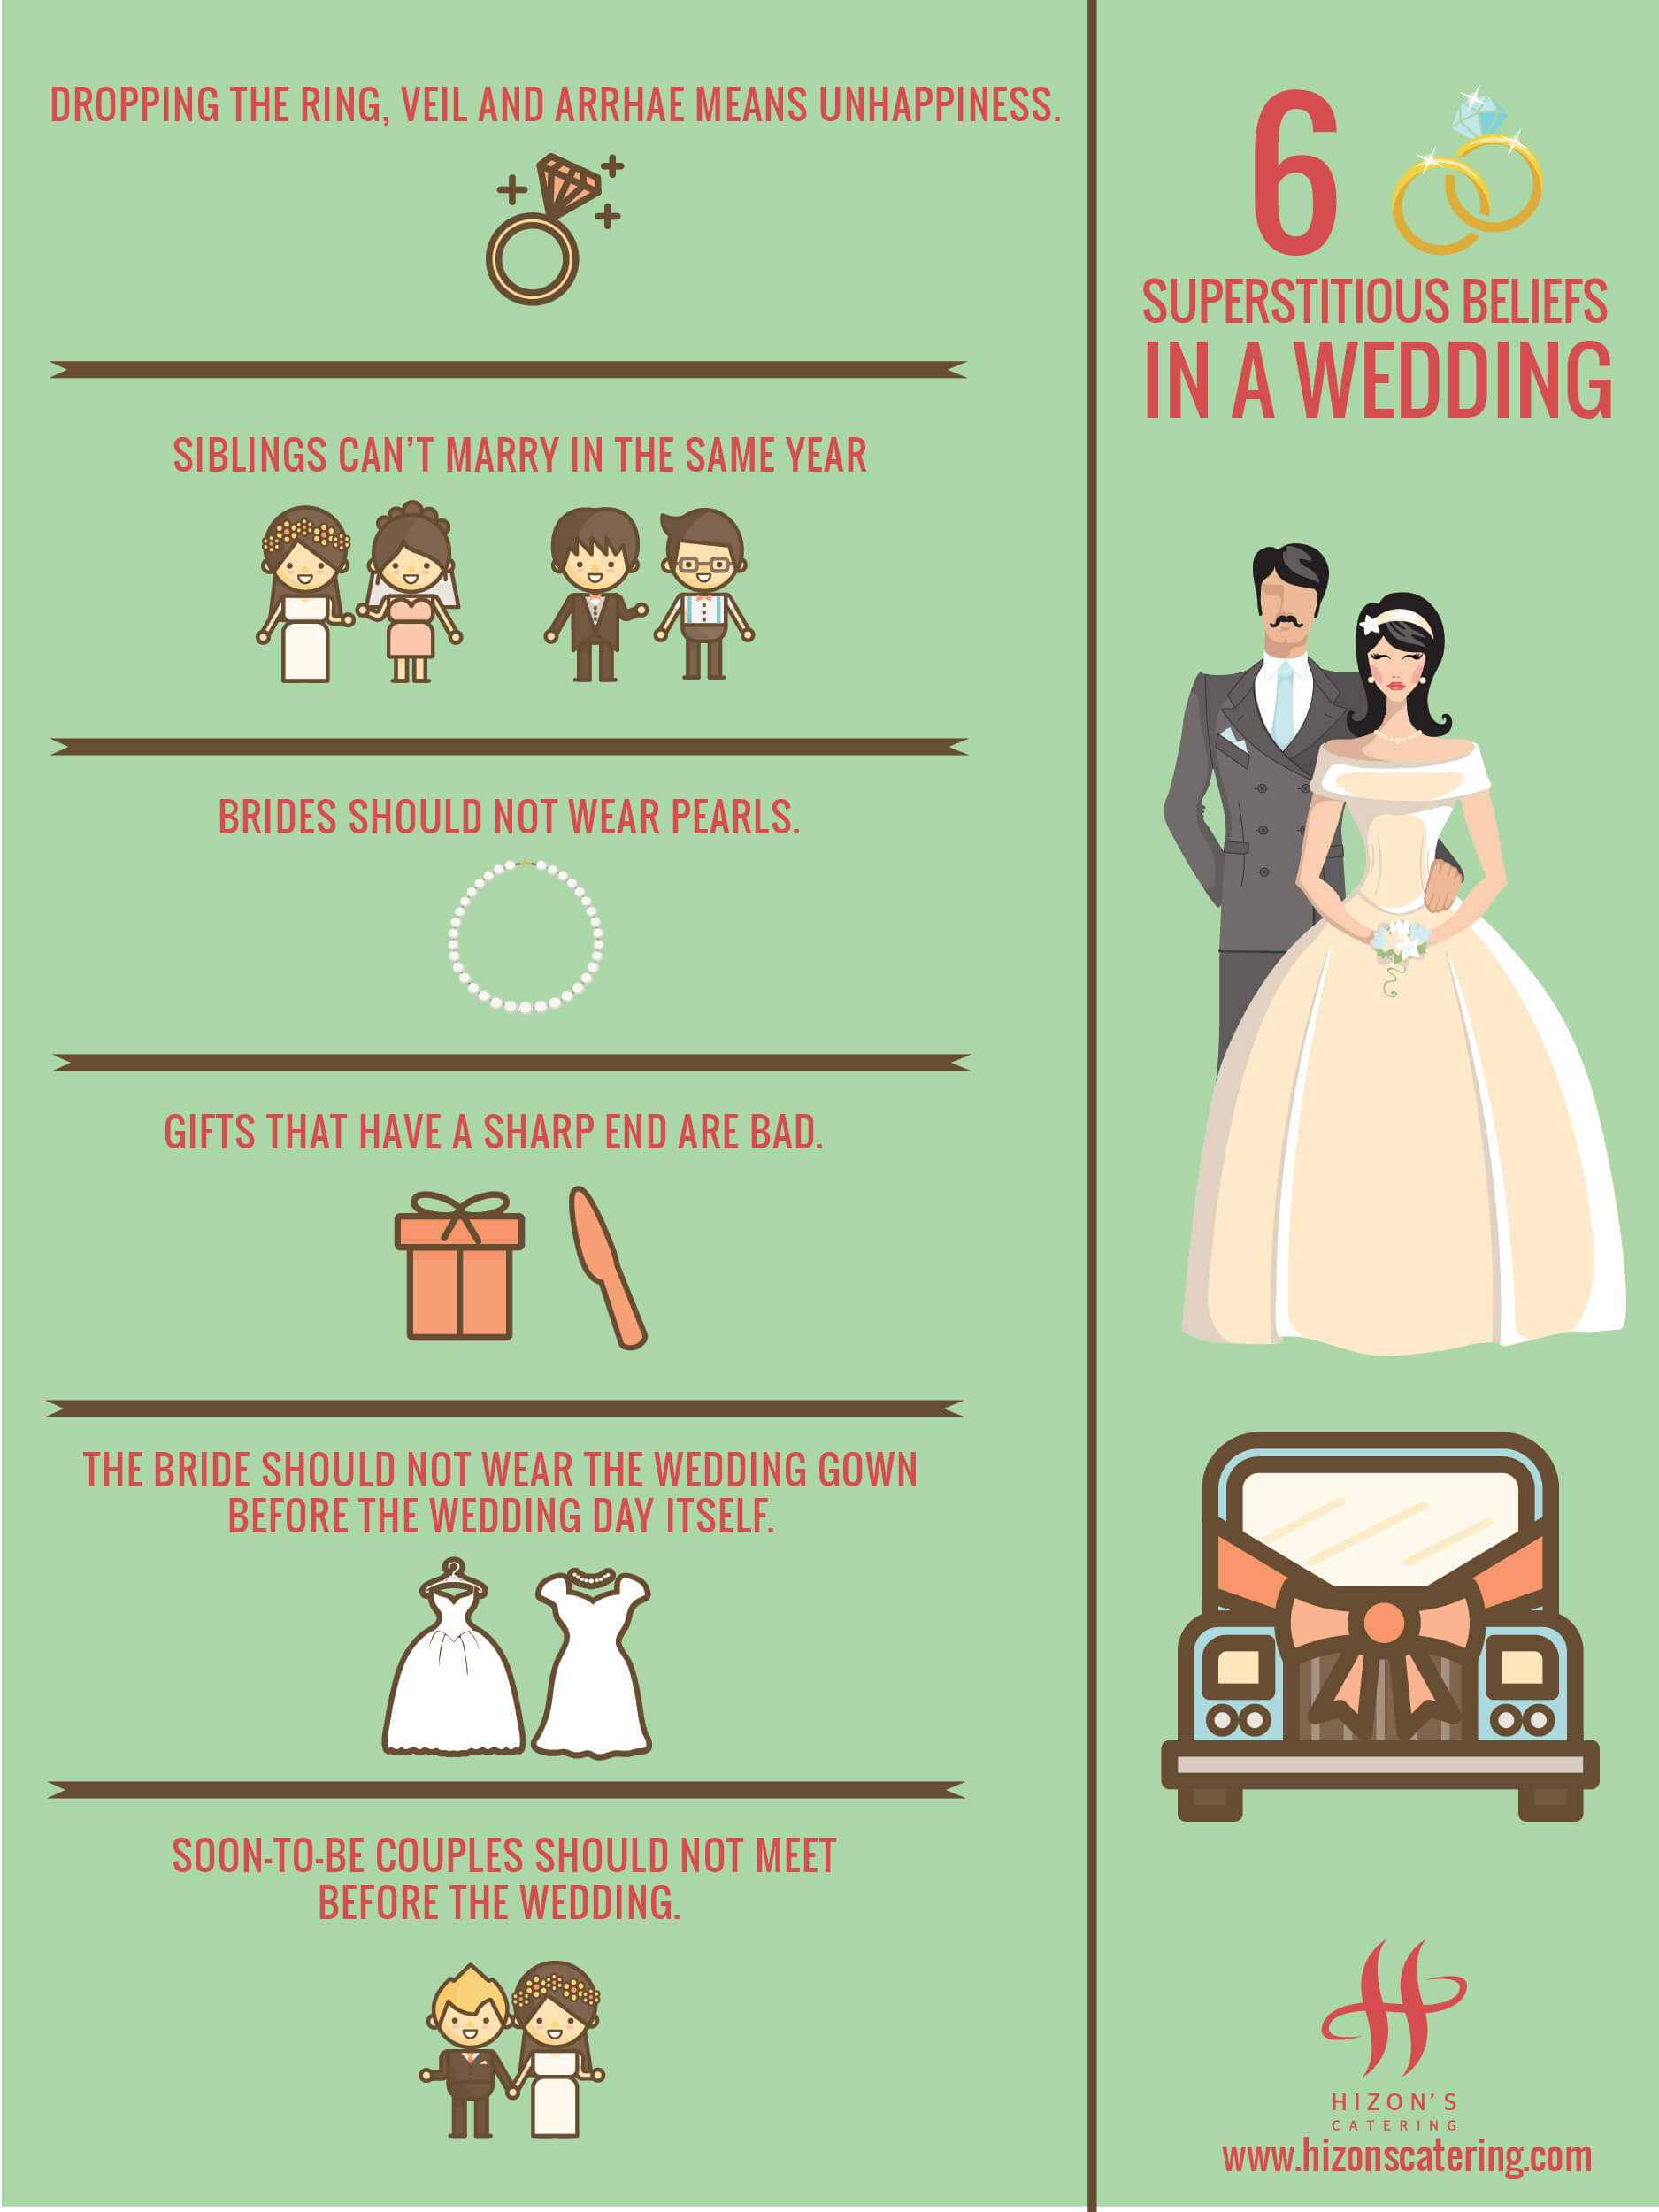 hizons catering wedding superstitious beliefs